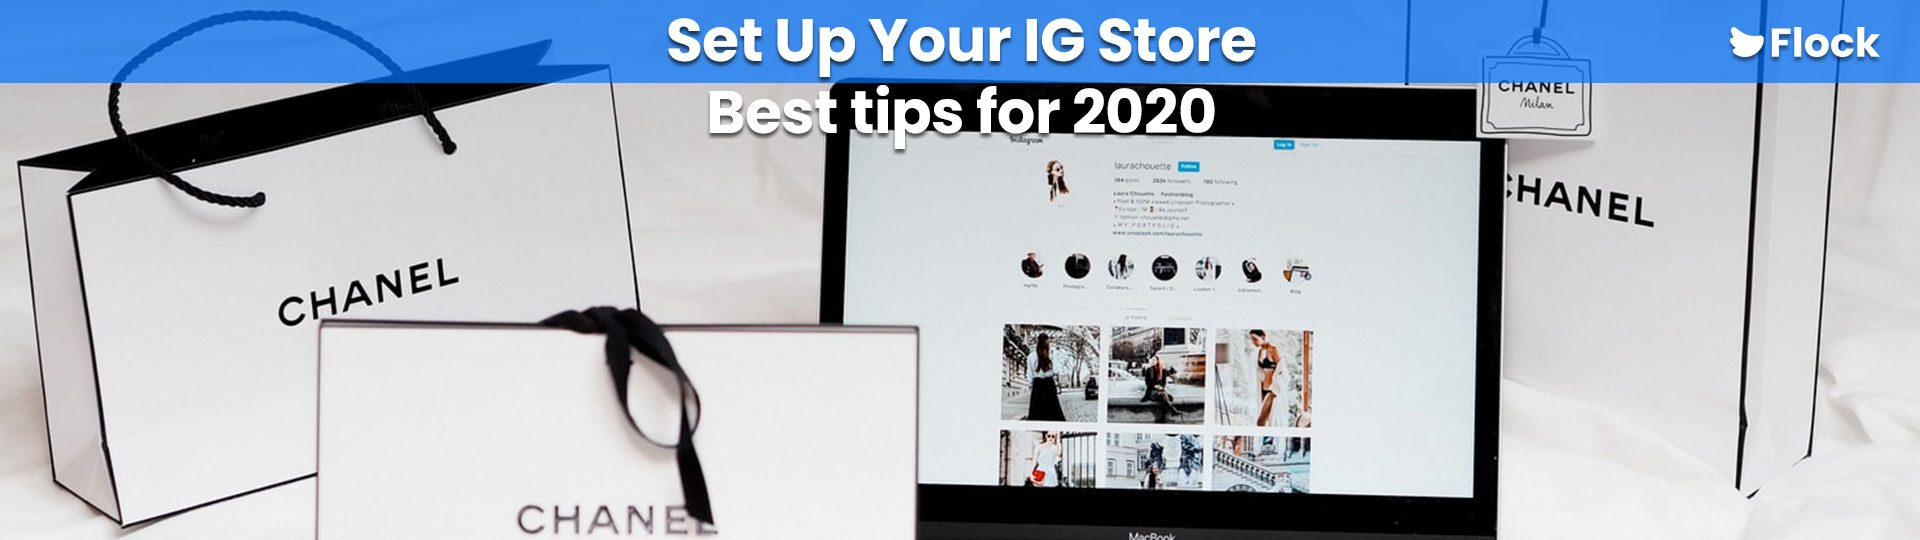 Set up your IG Store - Best Tips for 2020